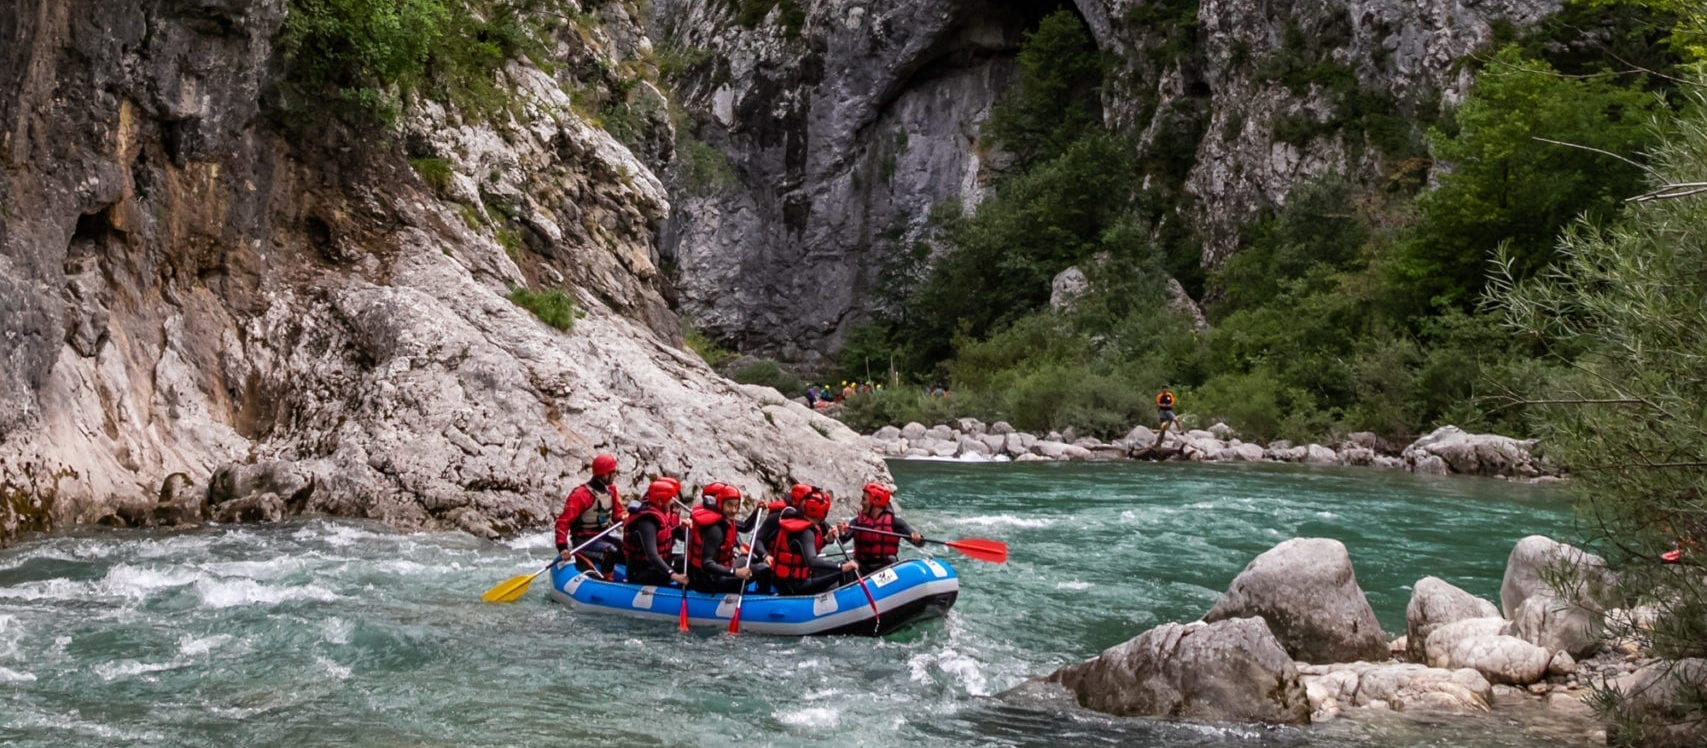 https://haute-provence-outdoor.com/article/niveau-du-verdon-et-activites-deau-vive-comprendre-le-role-des-barrages/